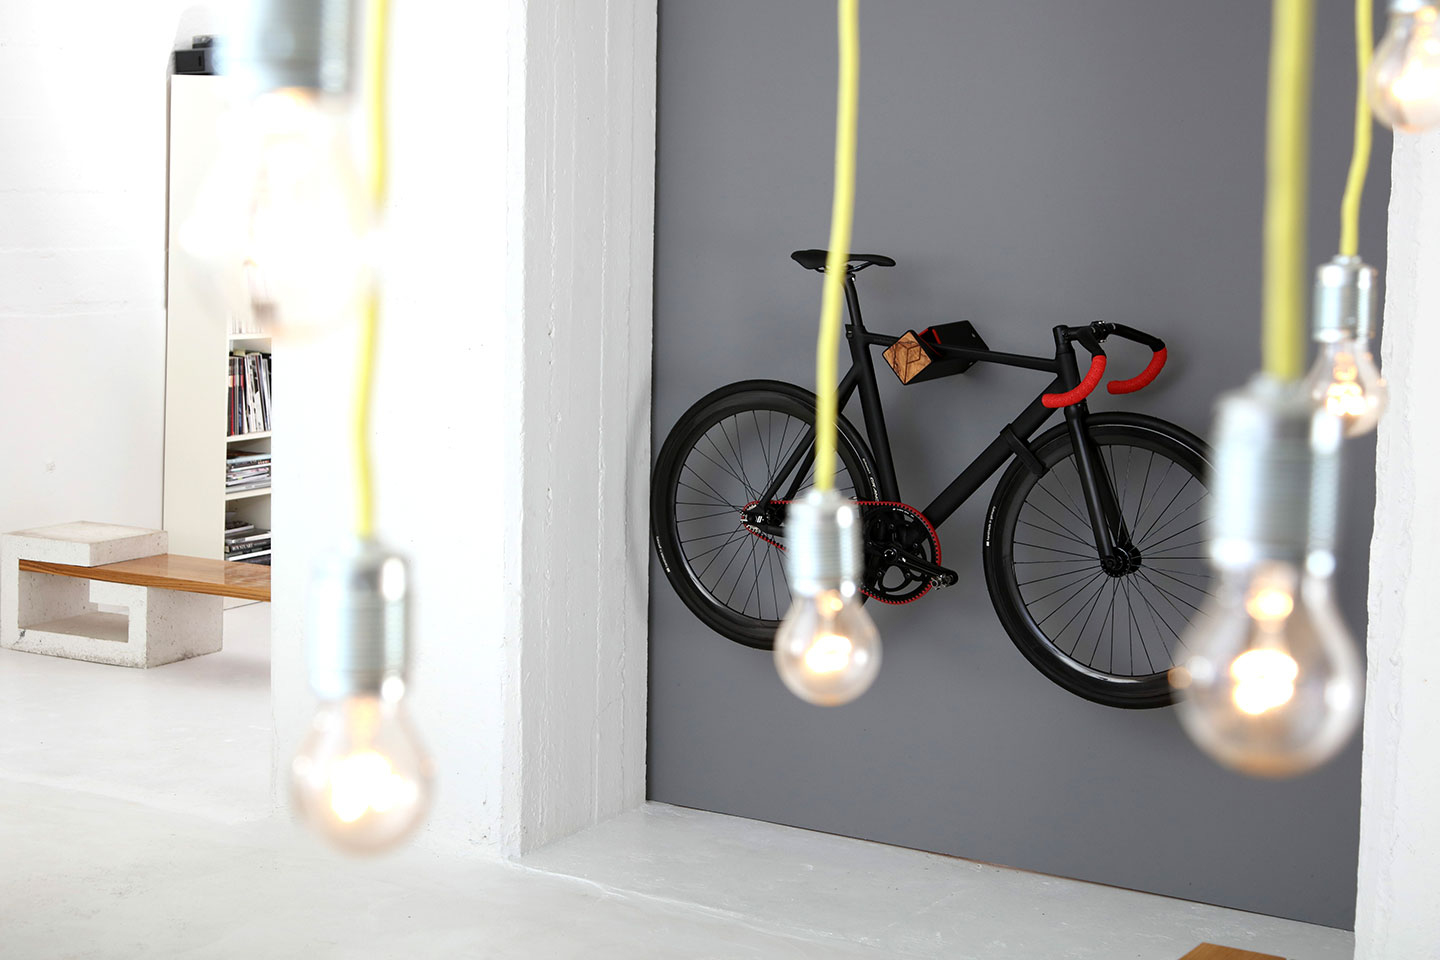 parax d rack fahrradhalterung made with passion we love to bike. Black Bedroom Furniture Sets. Home Design Ideas